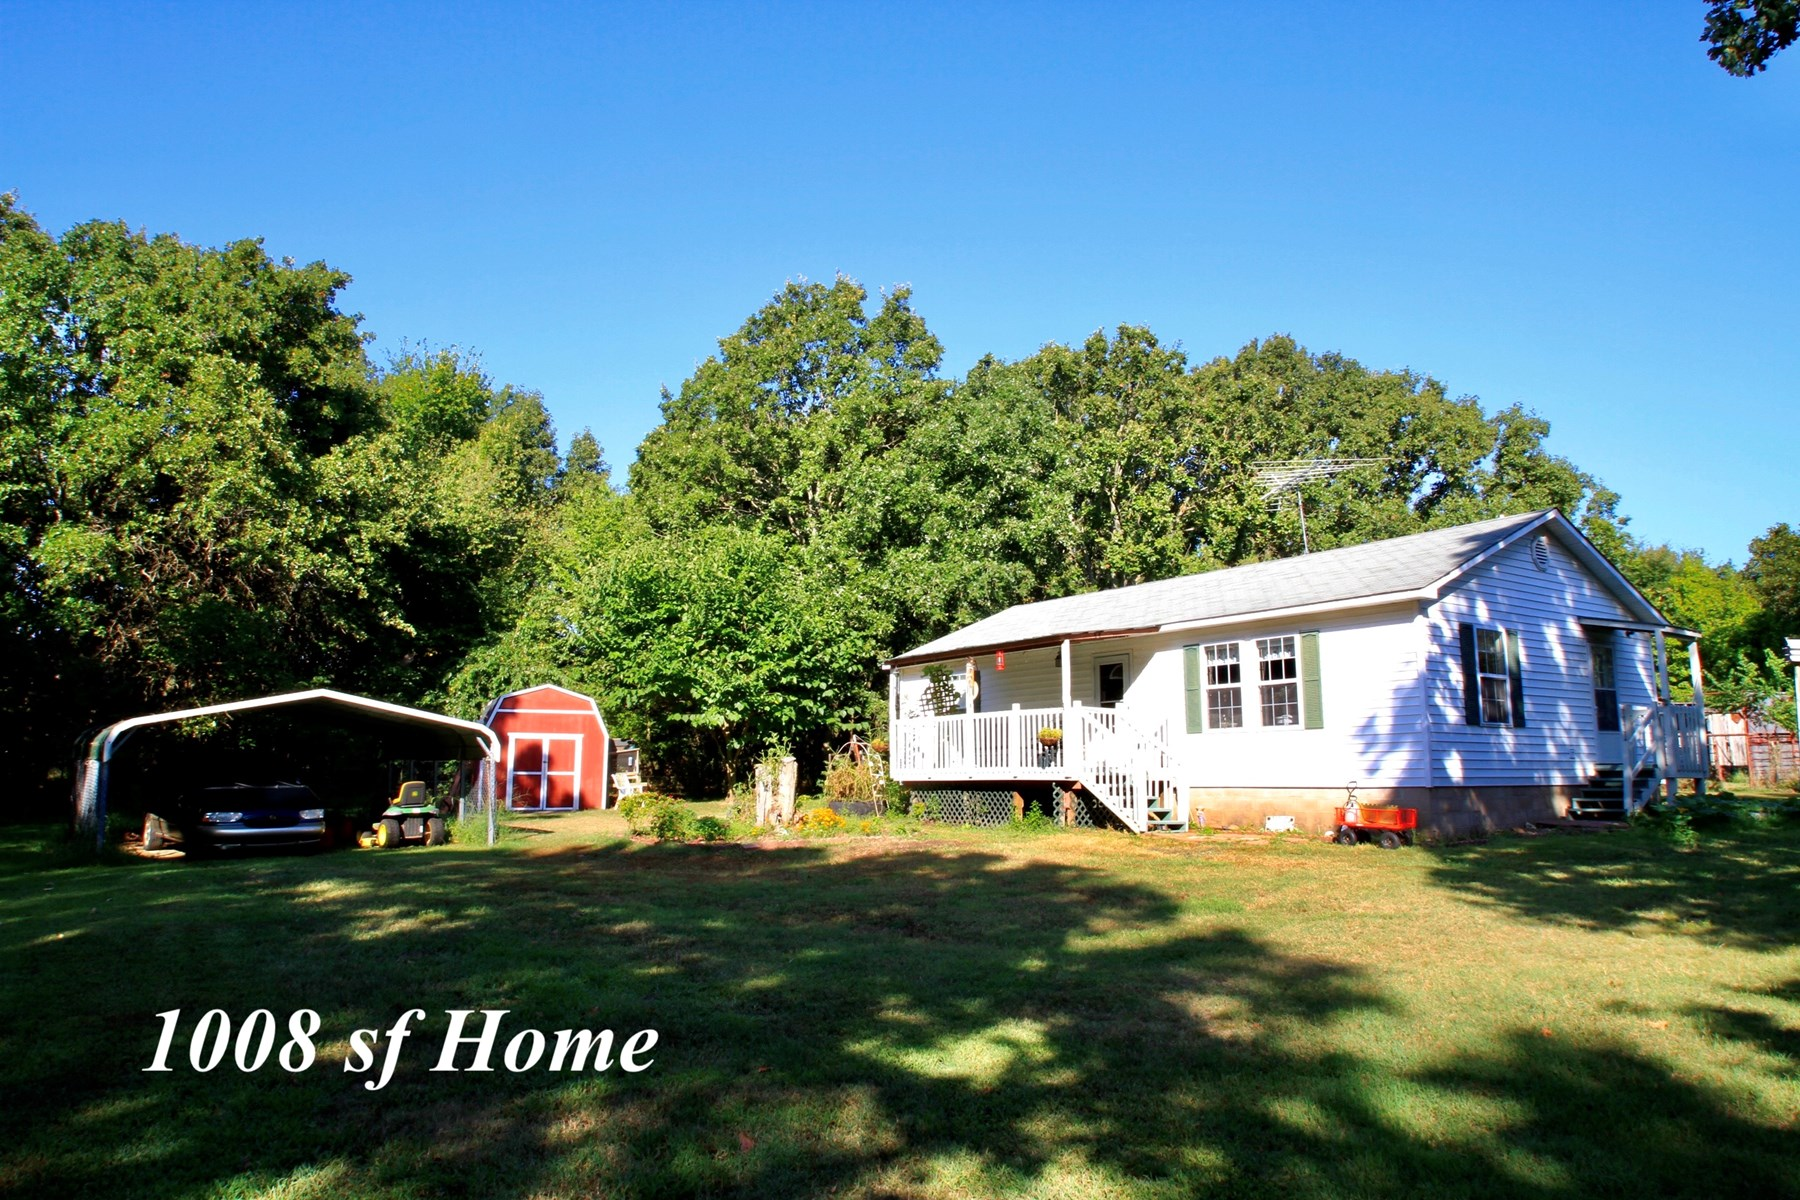 ACREAGE WITH 2 HOMES FOR SALE IN DELAWARE COUNTY